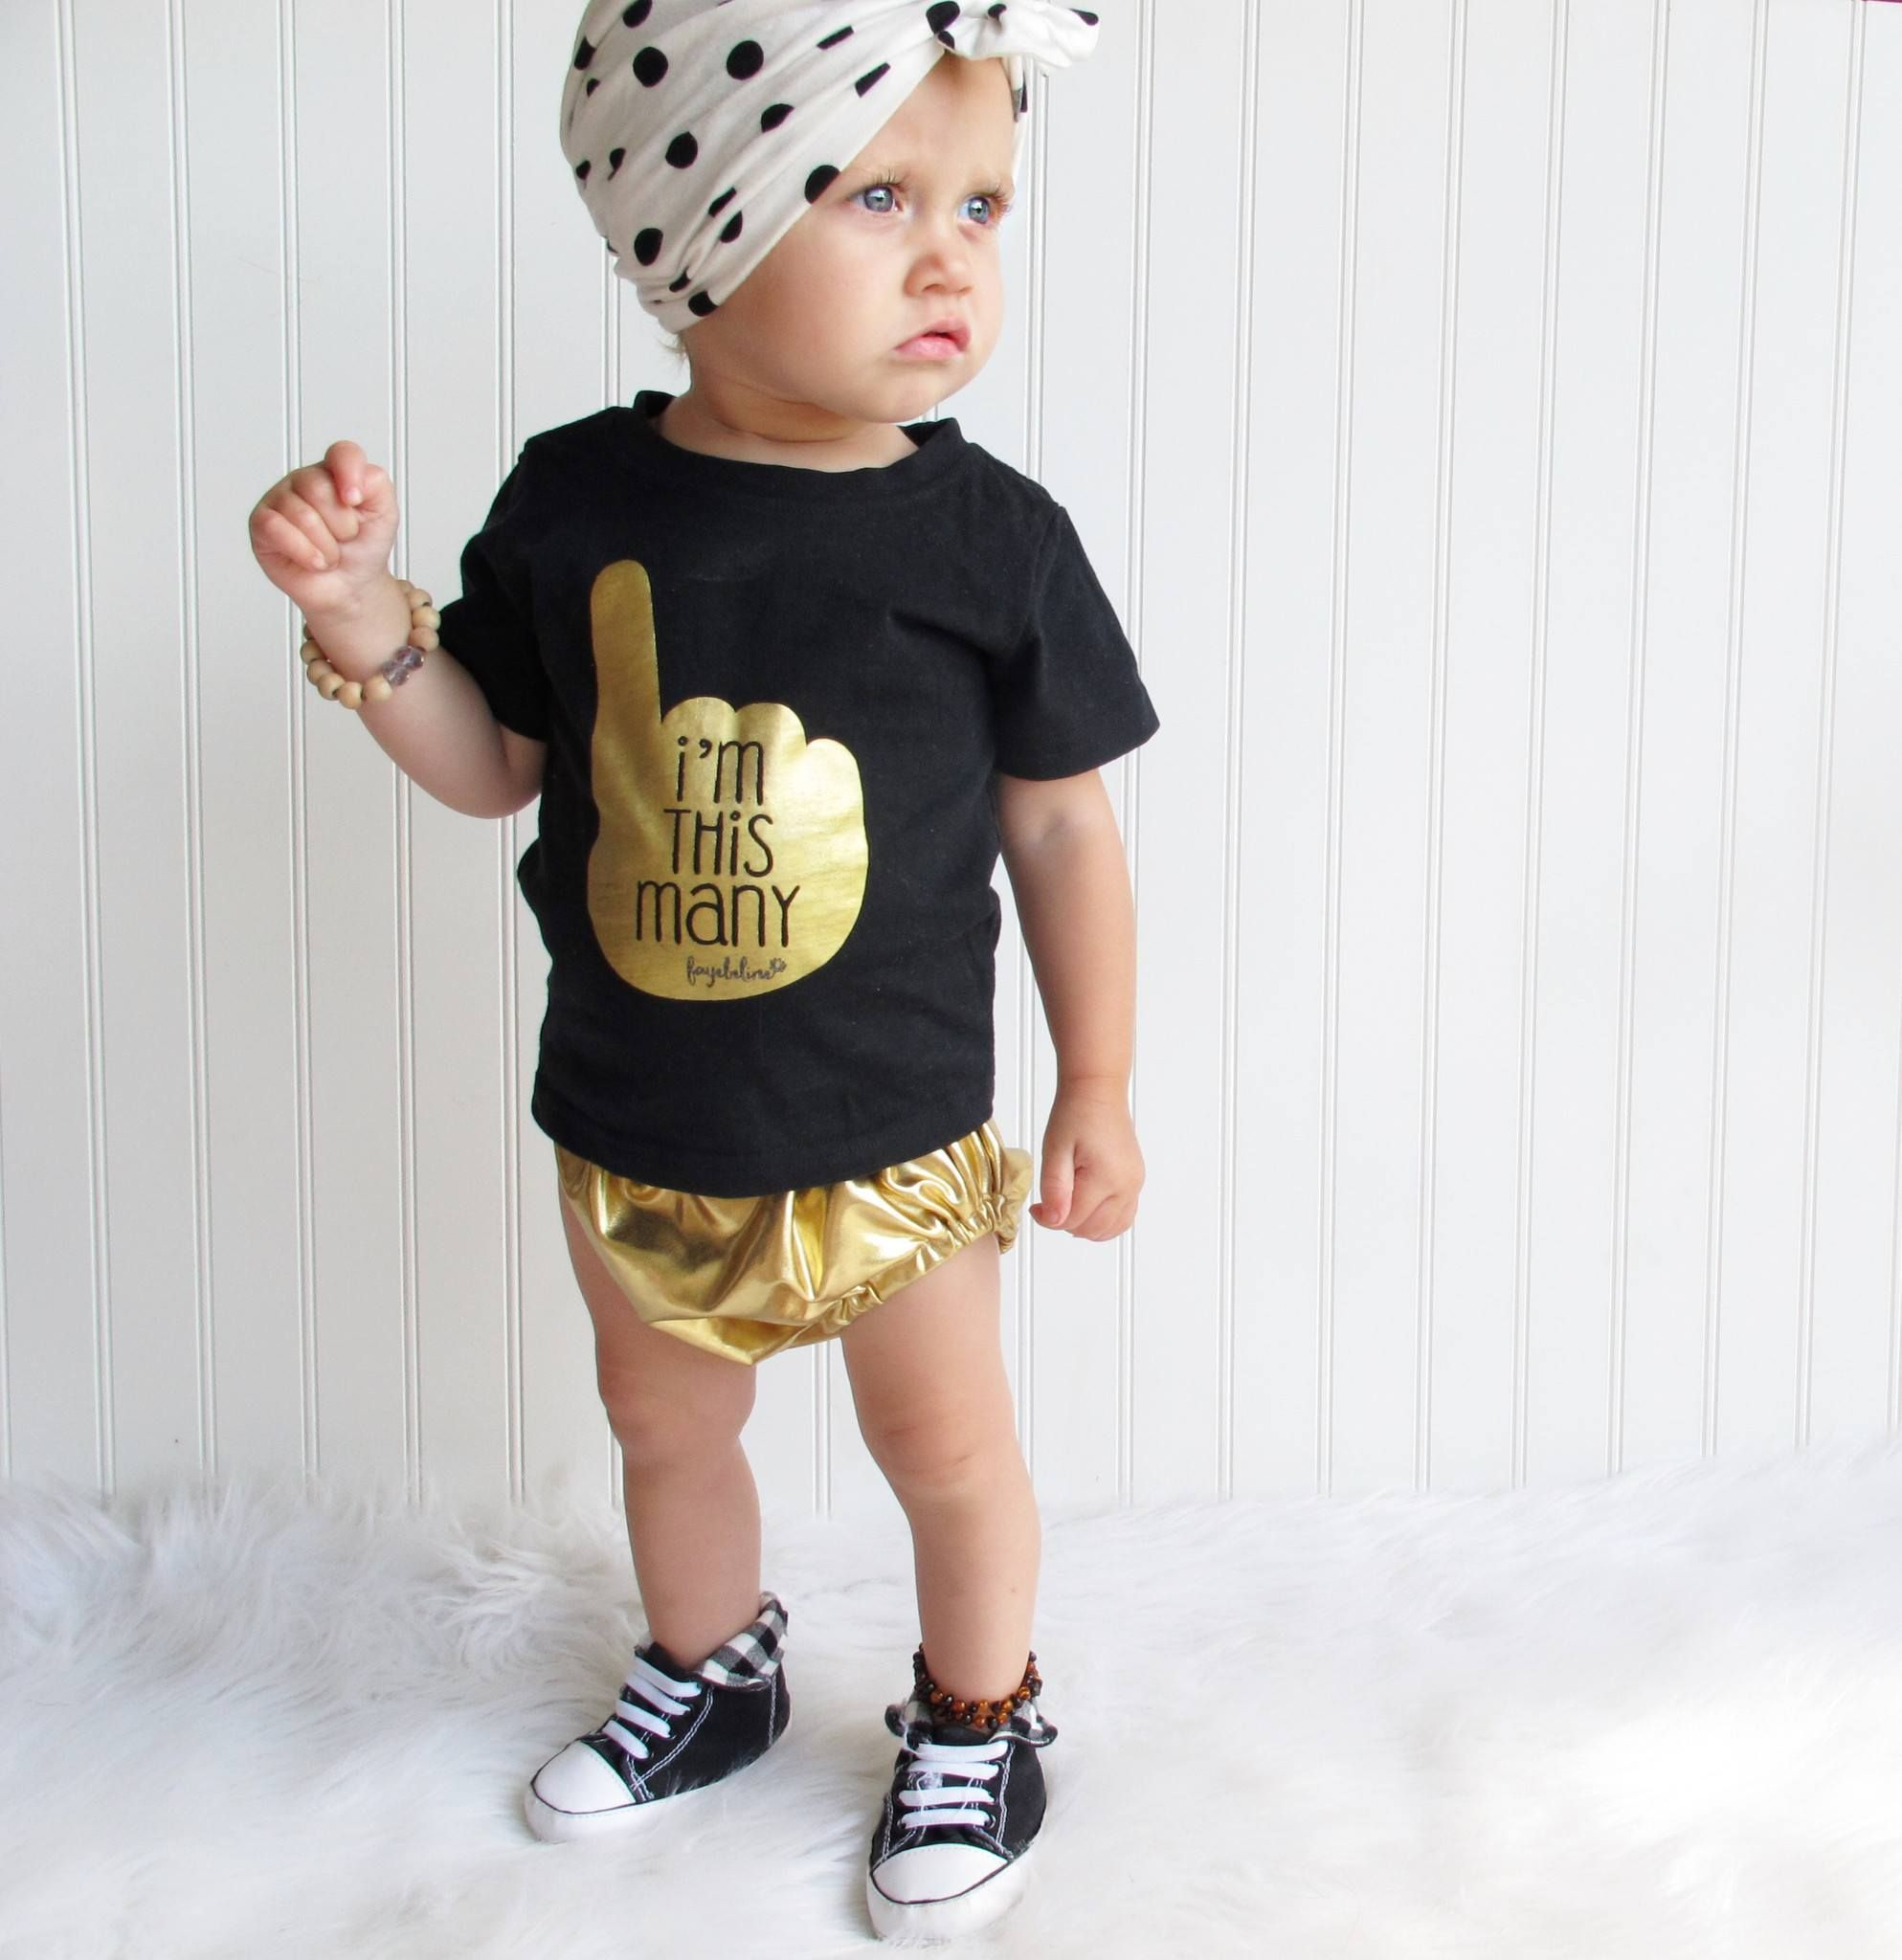 Im This Many One Year Old Birthday T Shirt Black Gold Foil Boy Or Girl